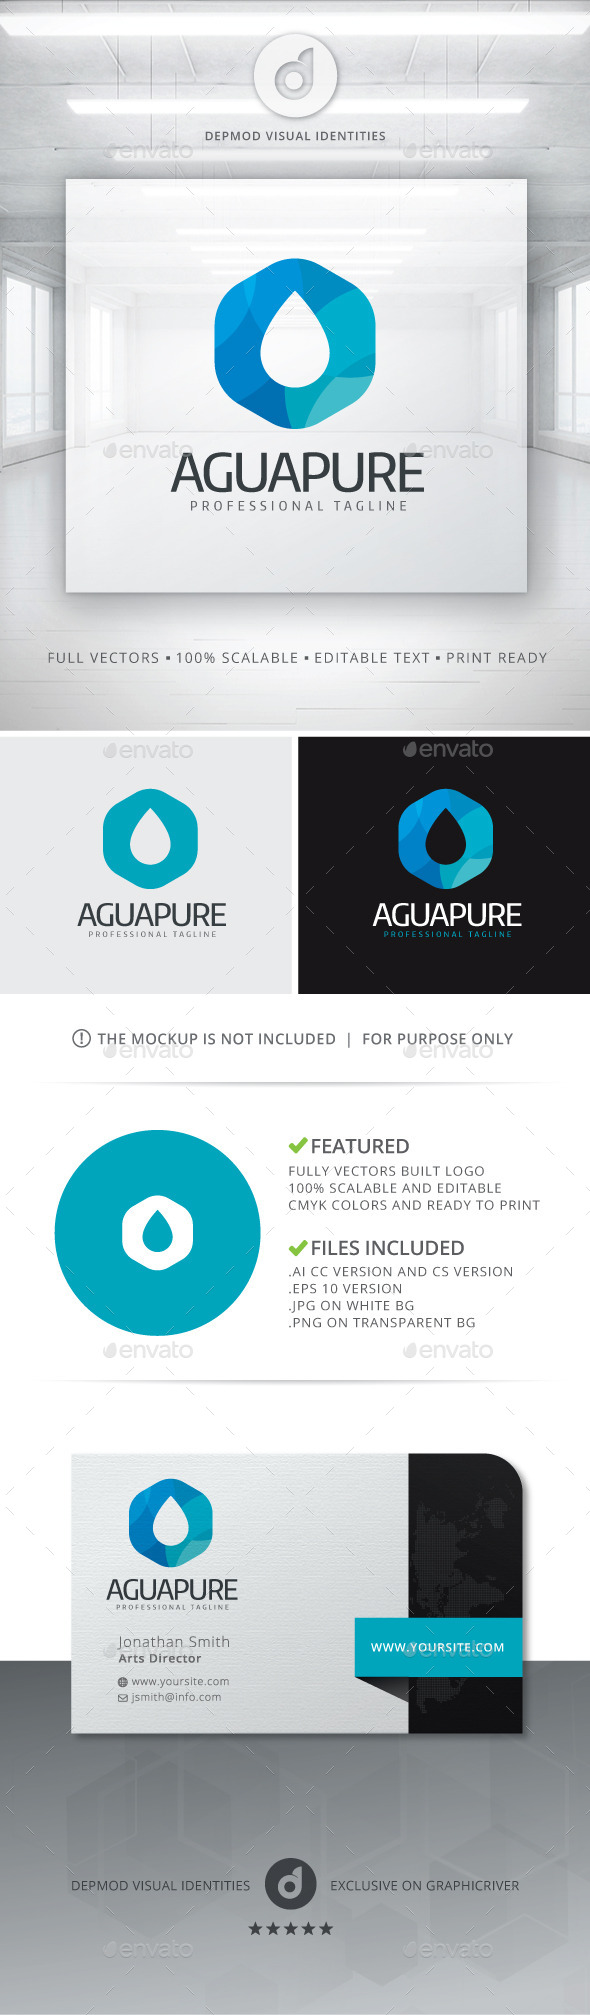 GraphicRiver Agua Pure Logo 10908690